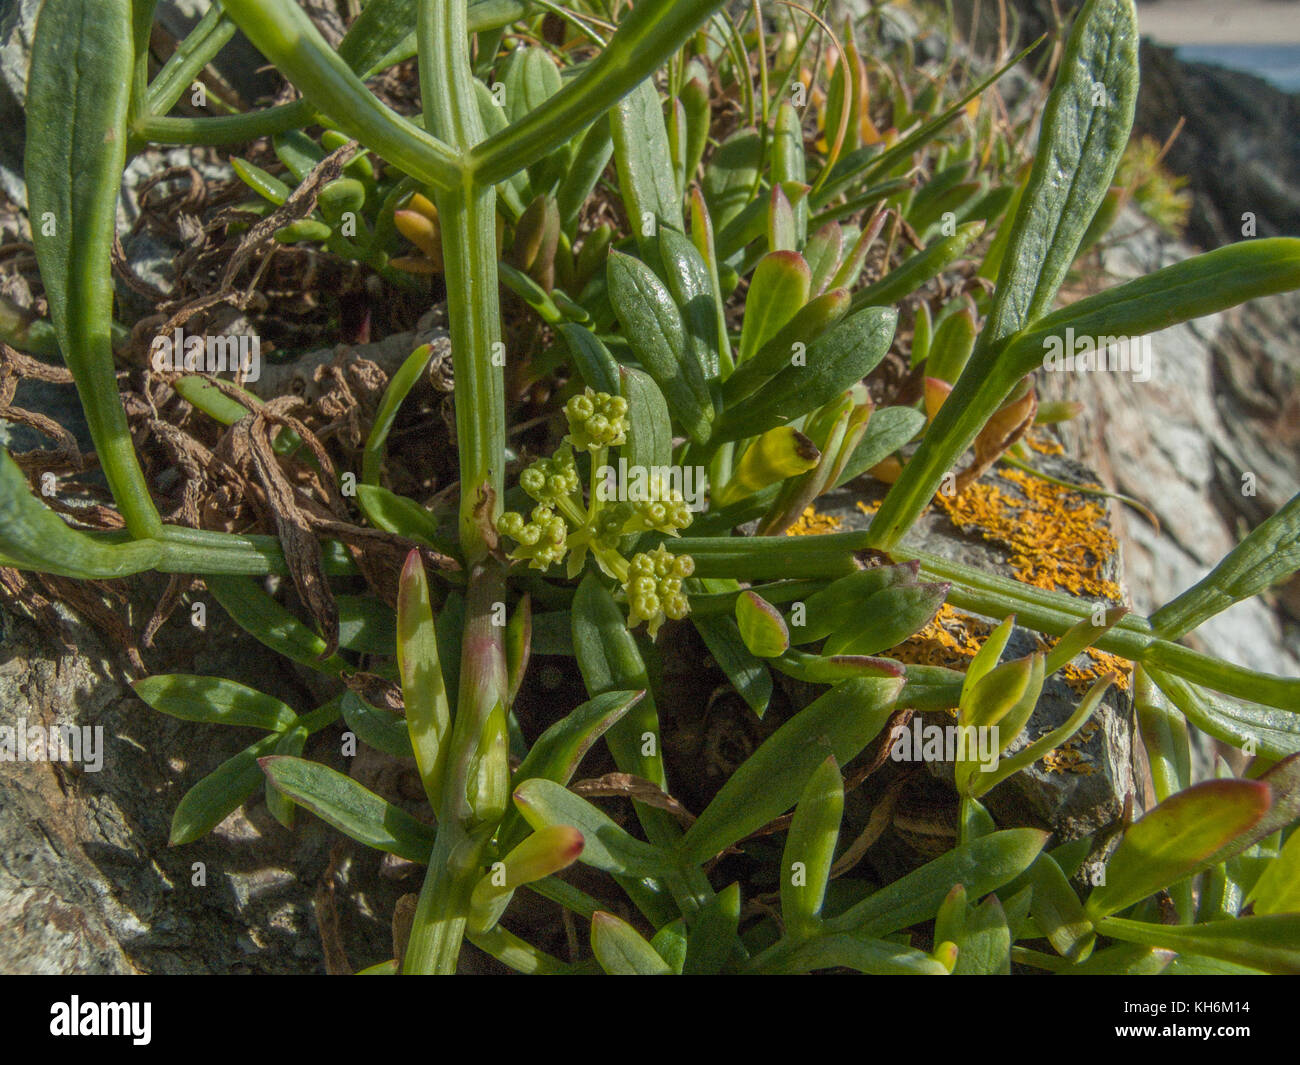 Example of Rock Samphire (Crithmum maritimum) growing wild. Samphire is foraged from the wild and pickled for kitchen - Stock Image